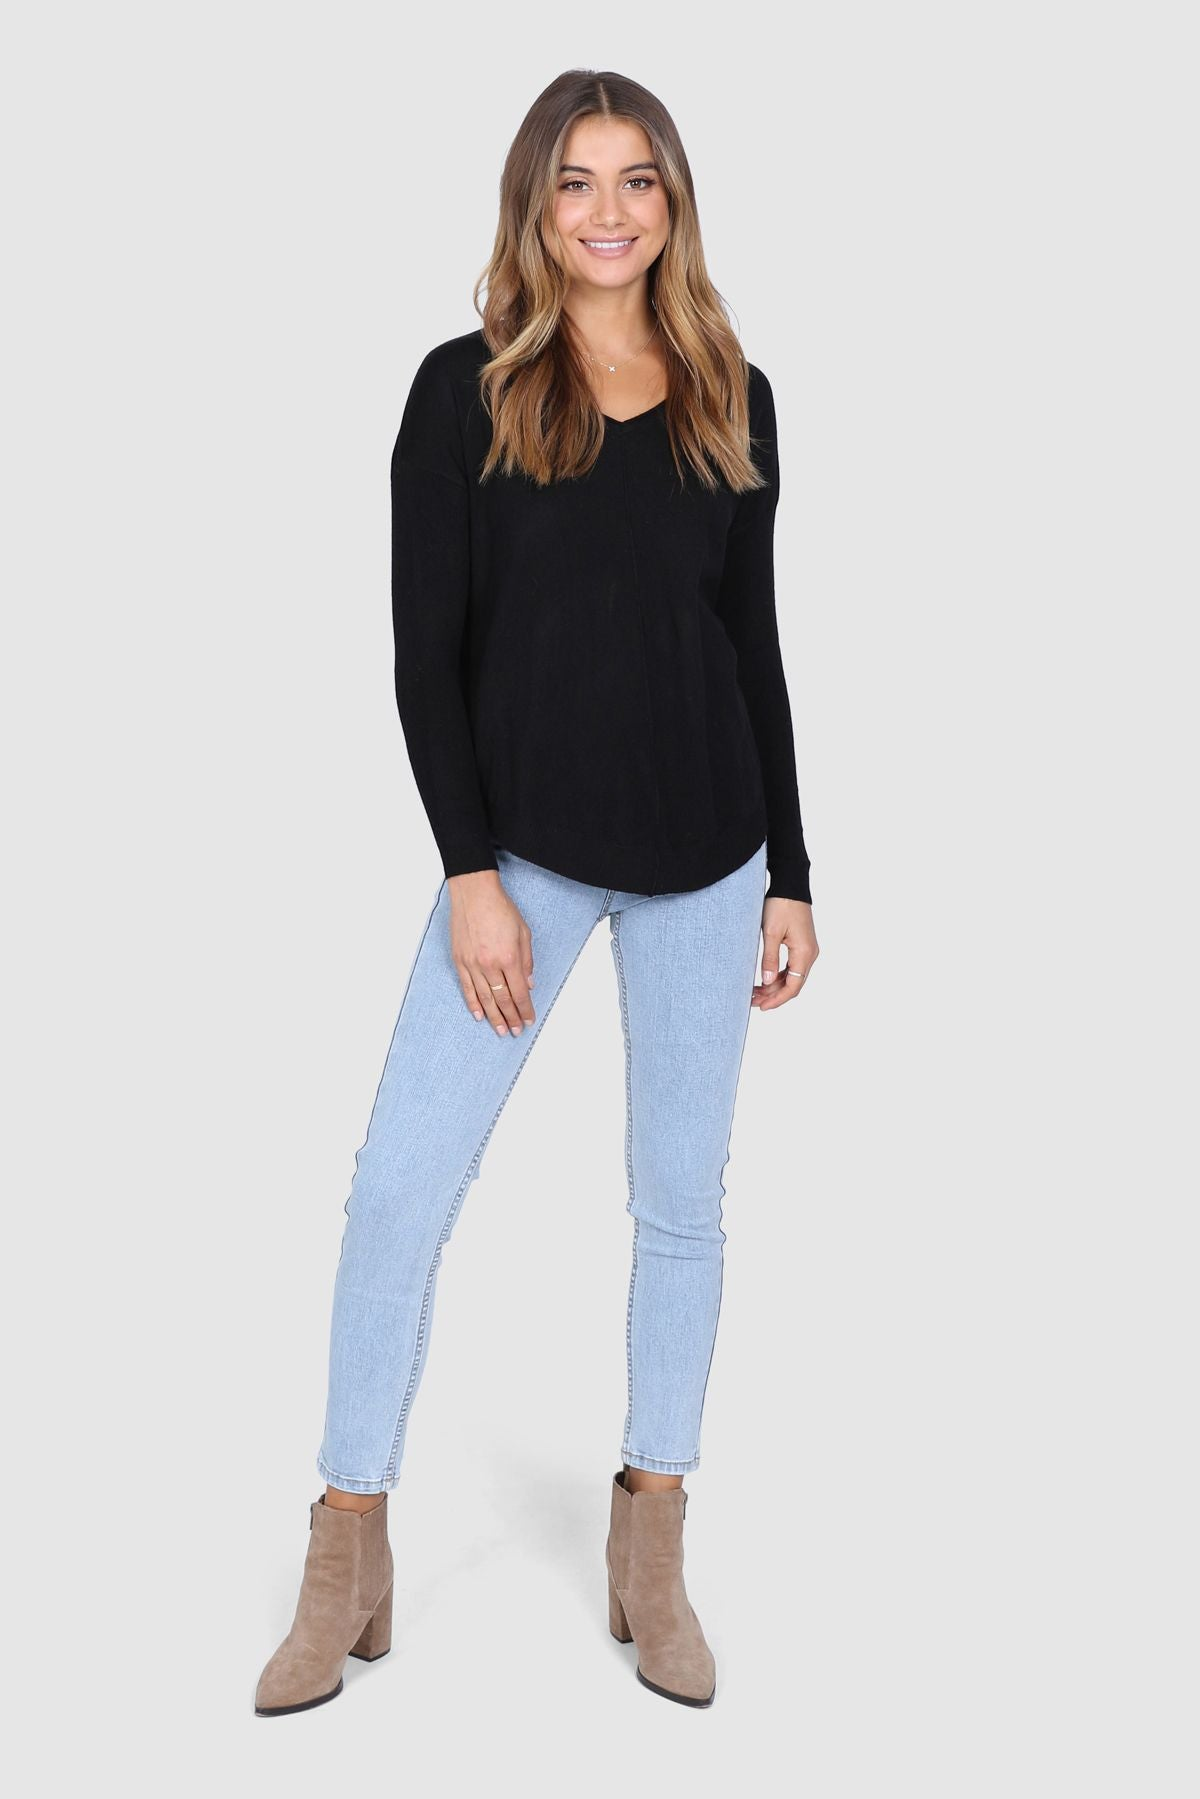 MIKAYLA KNIT - BLACK